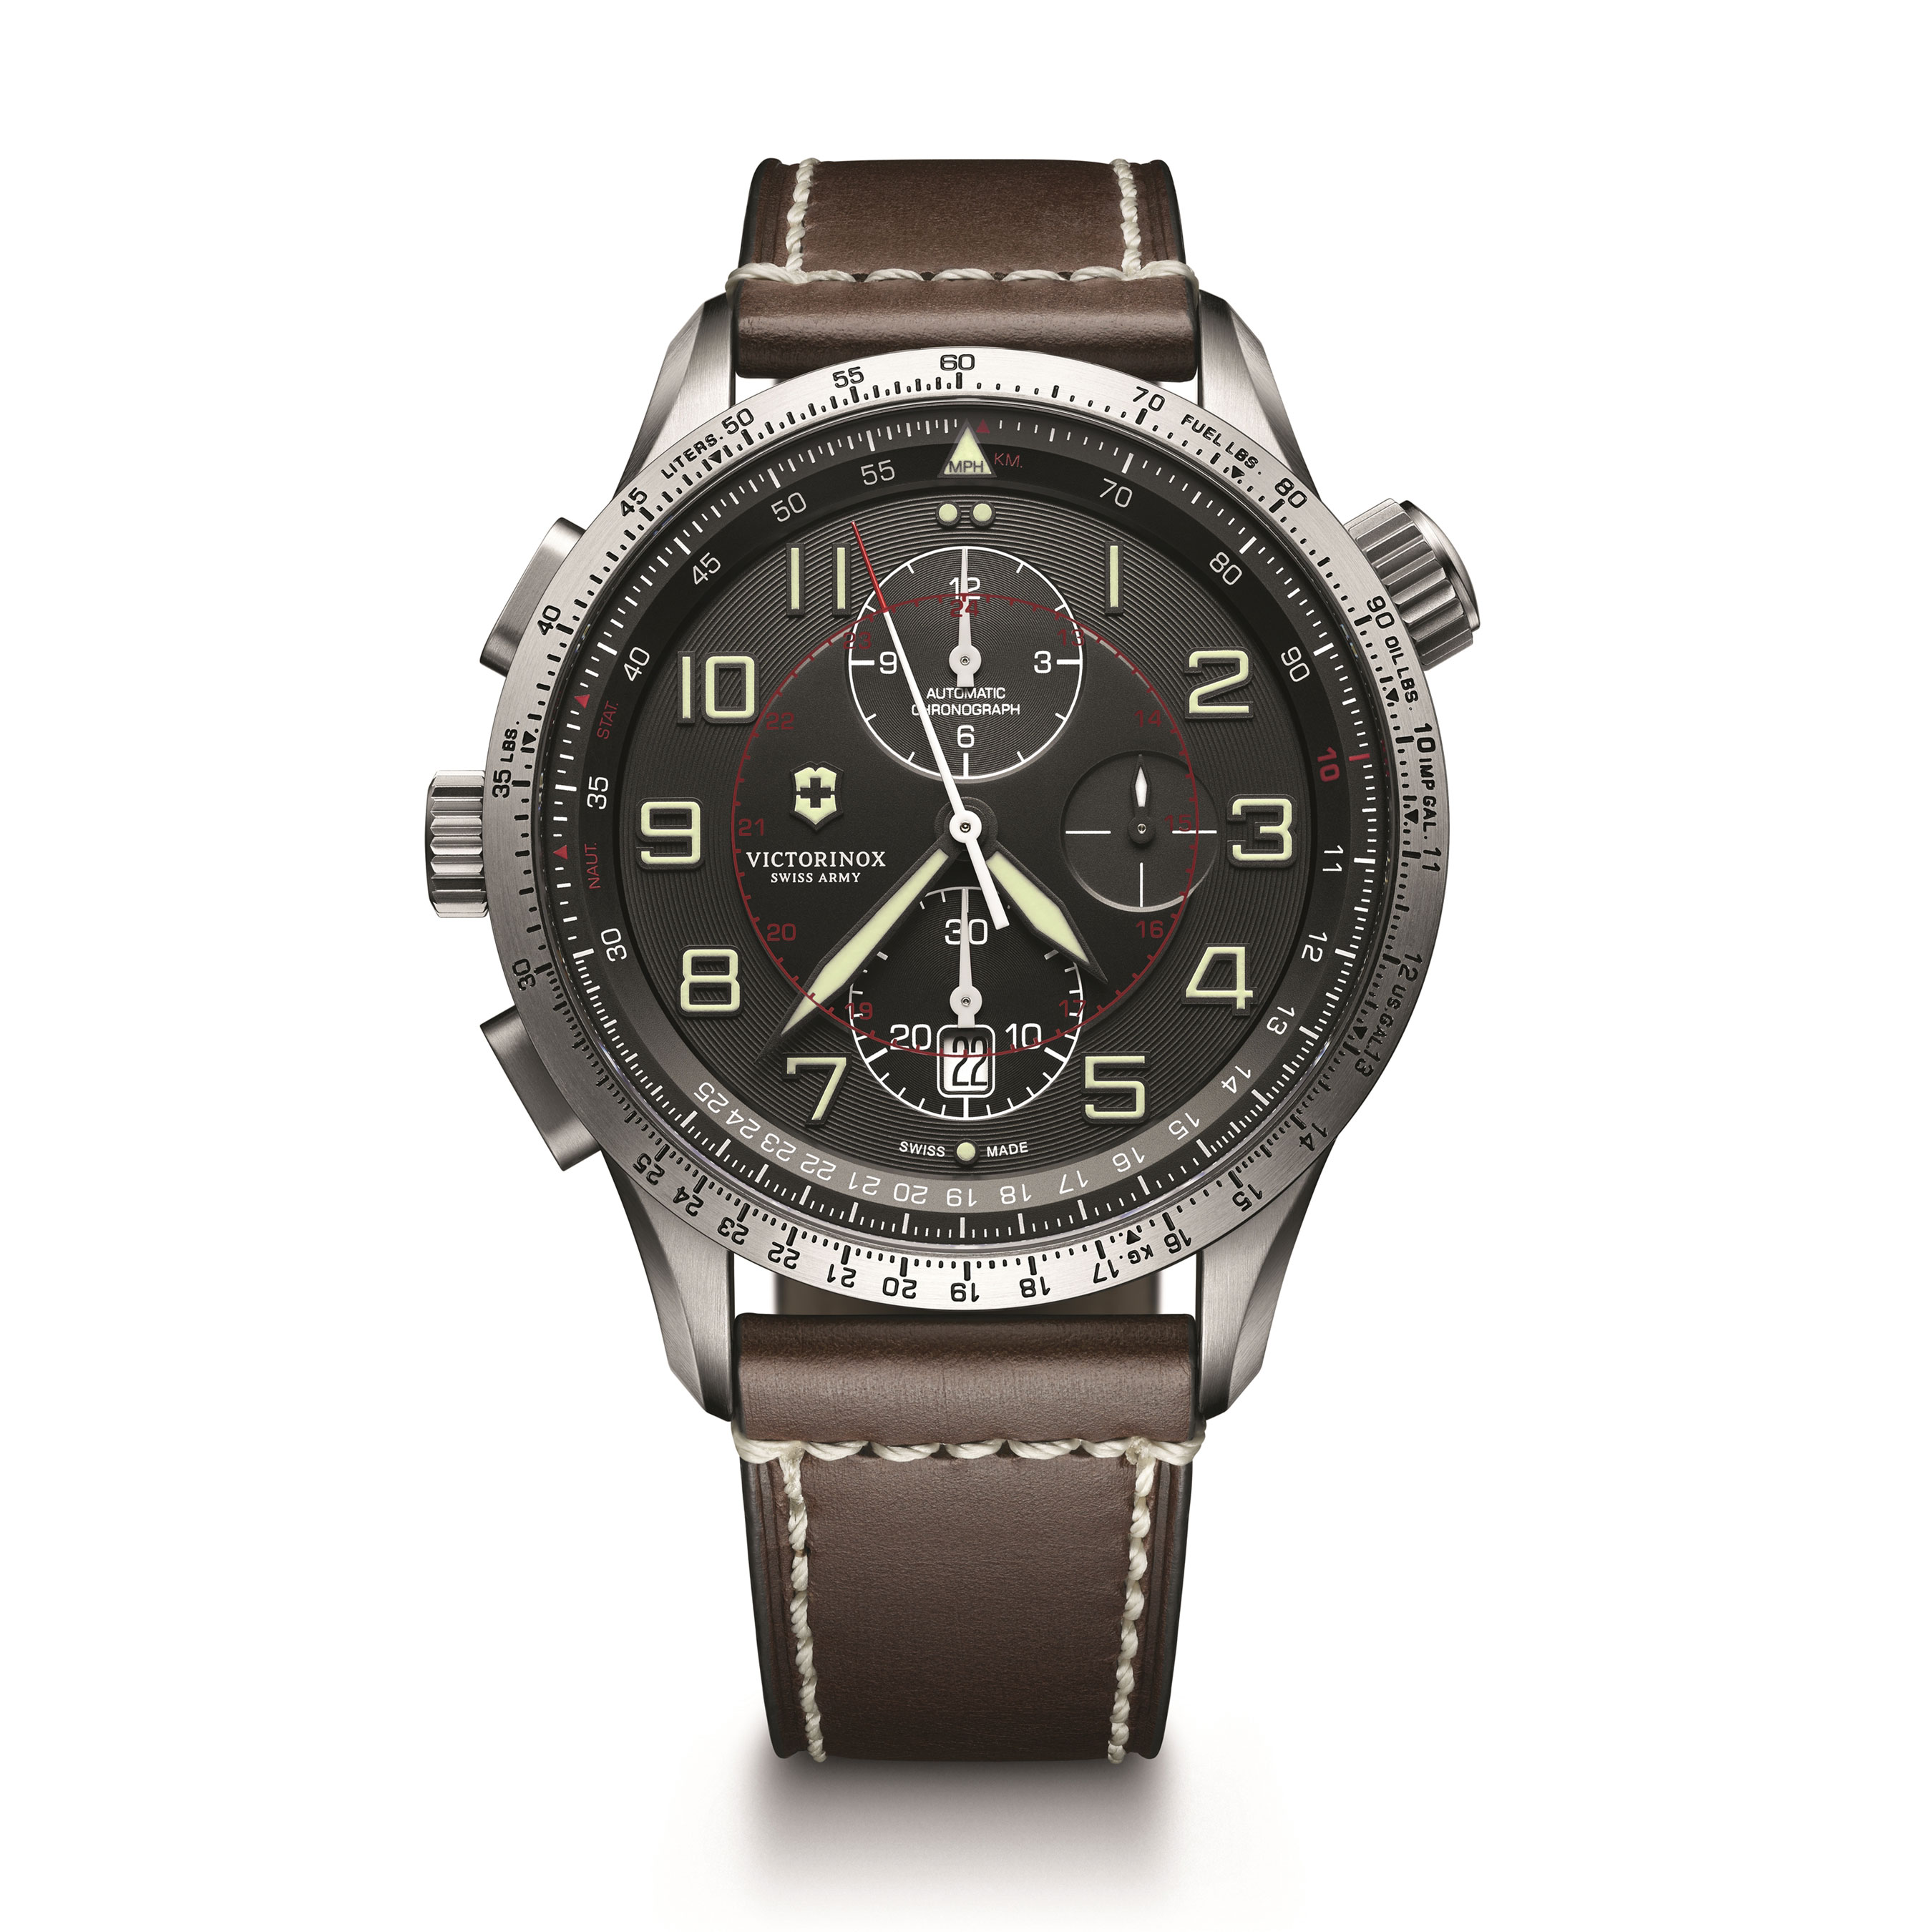 victorinox enlarged pro army strap watches chrono watch realreal swiss products the